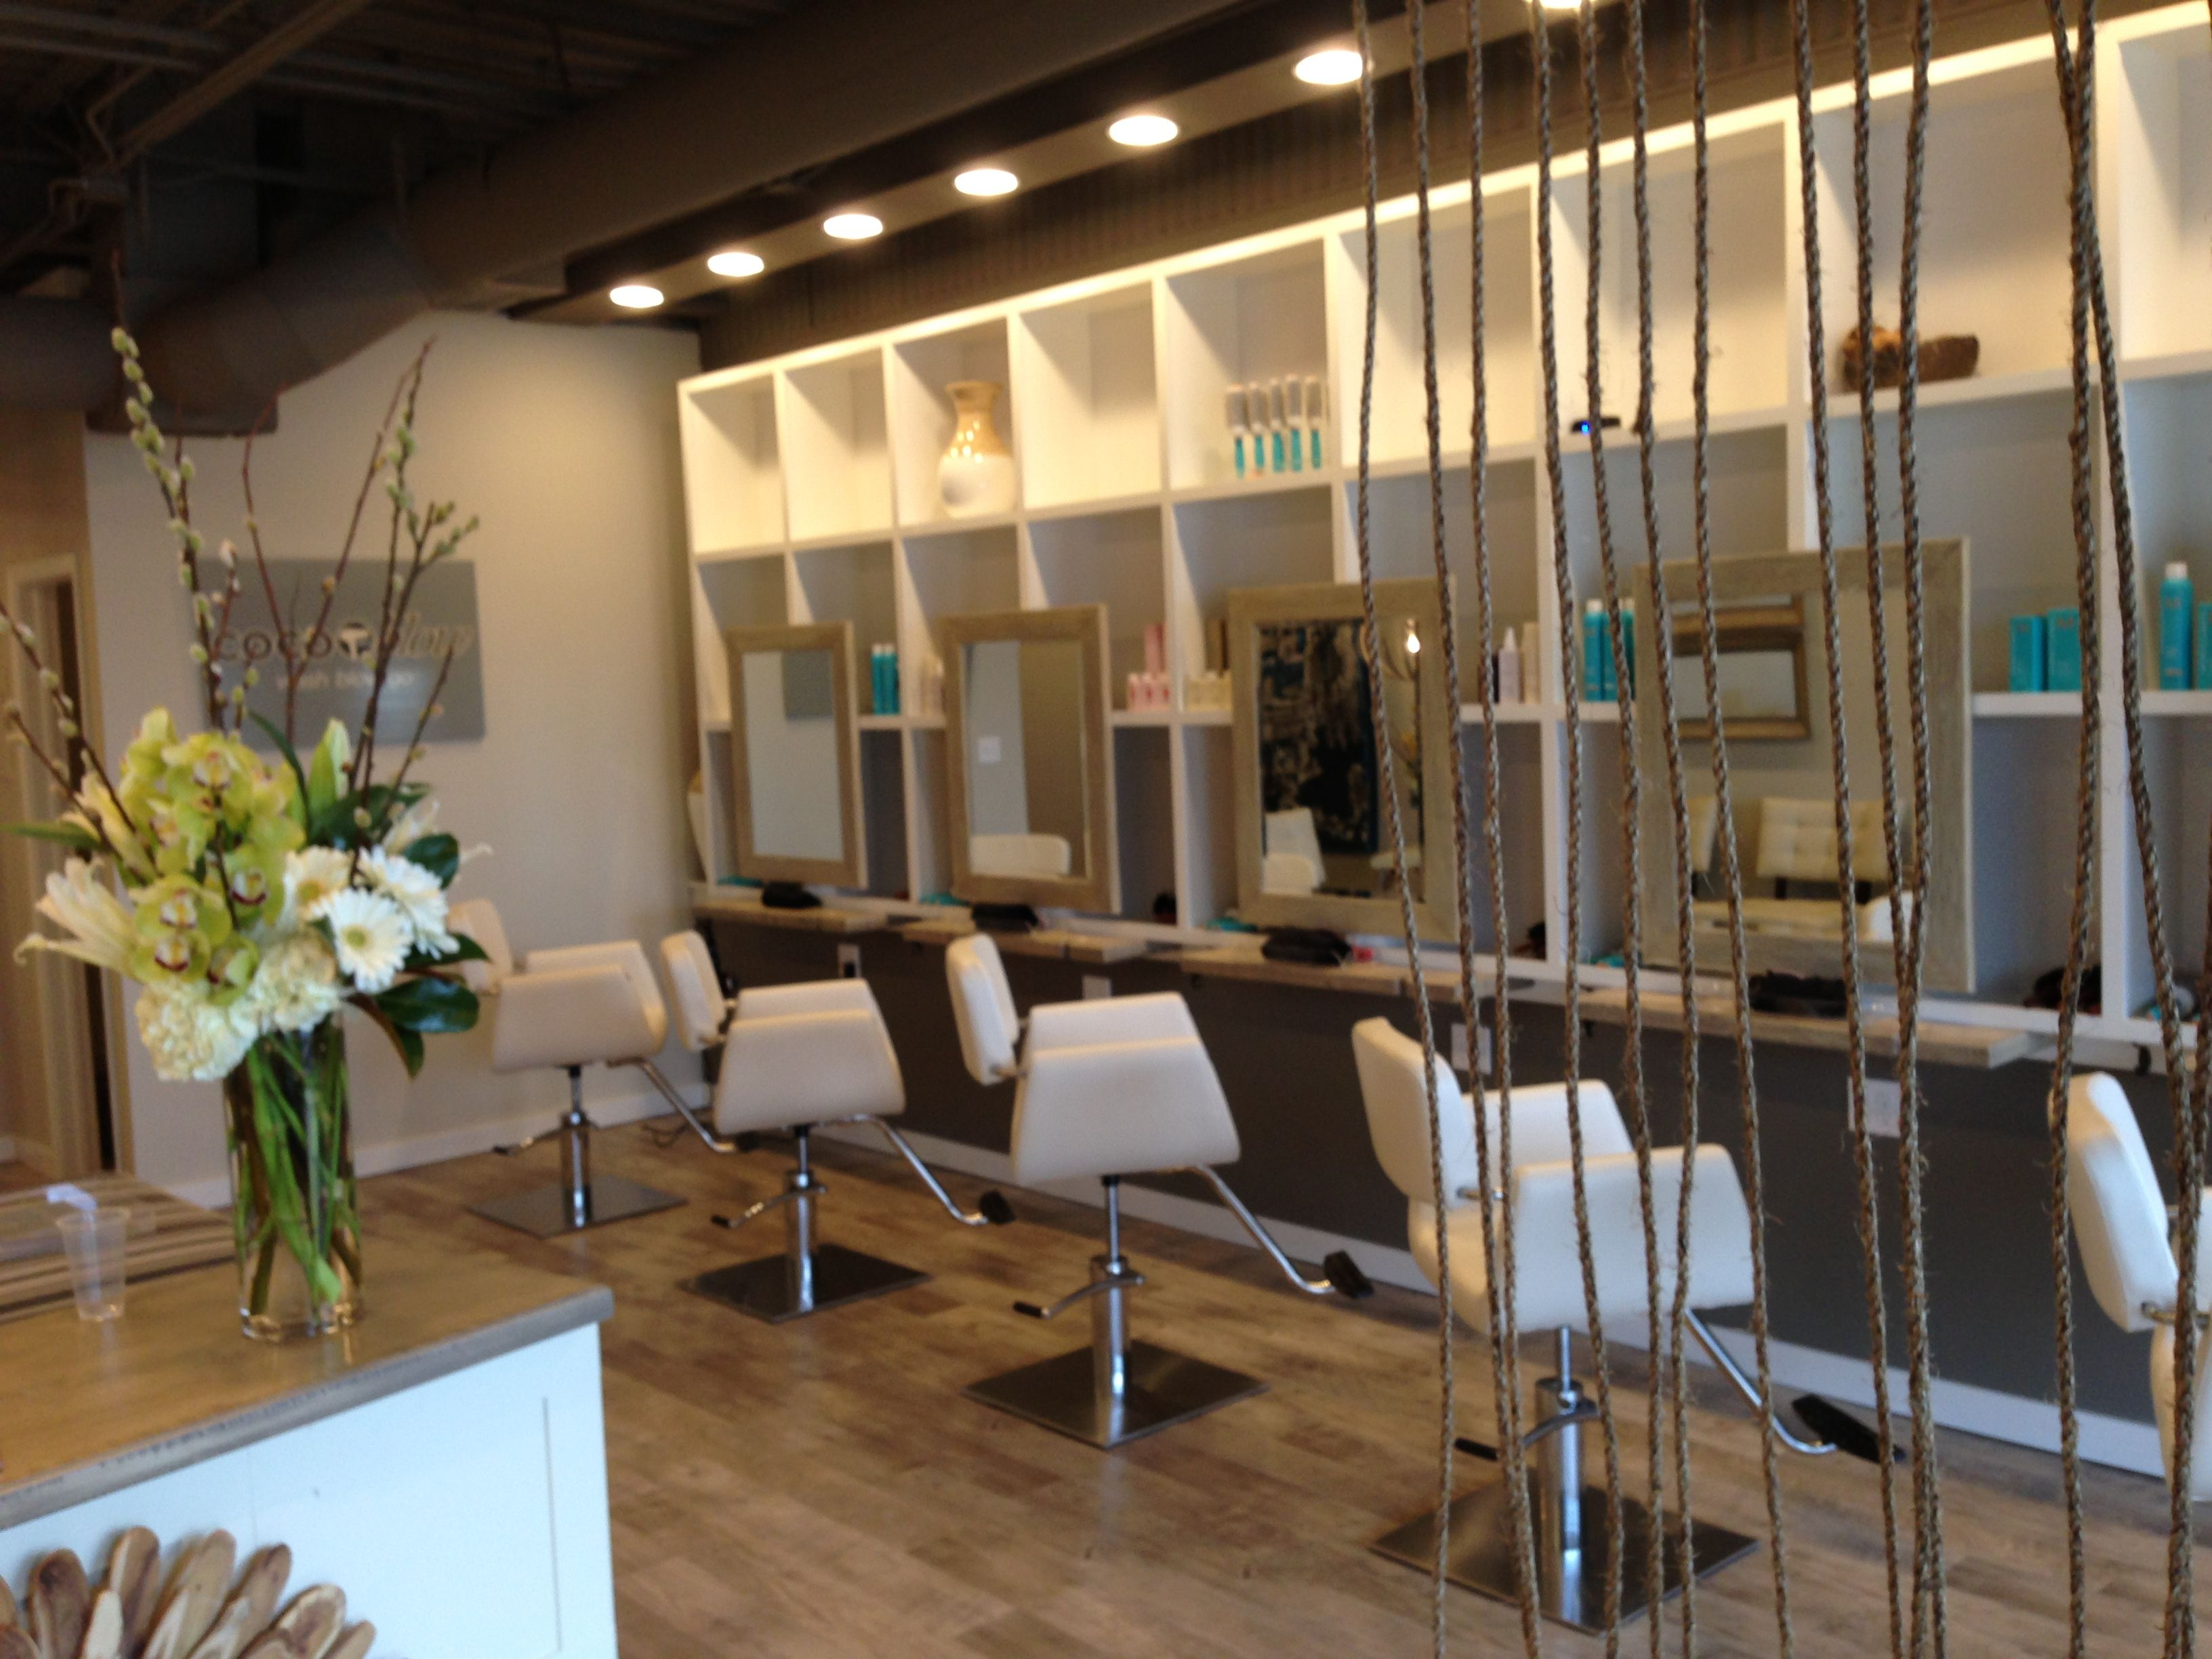 Pin By Coco Blow Salon On The Salon Styling Stations Home Decor Interior Design